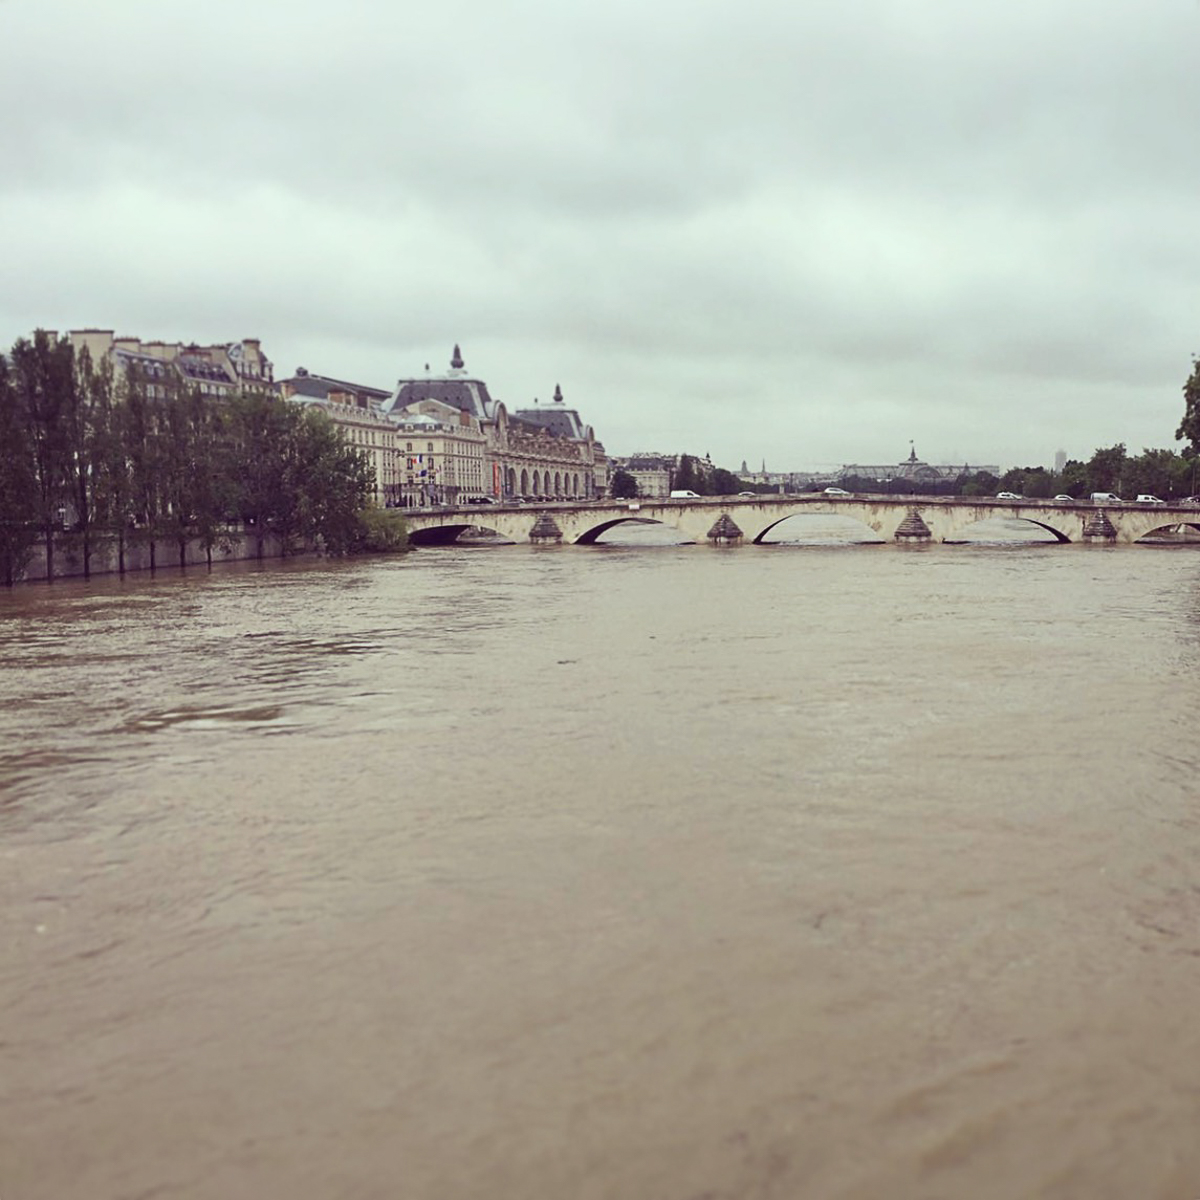 High Seine level. Musee d'Orsay in the background